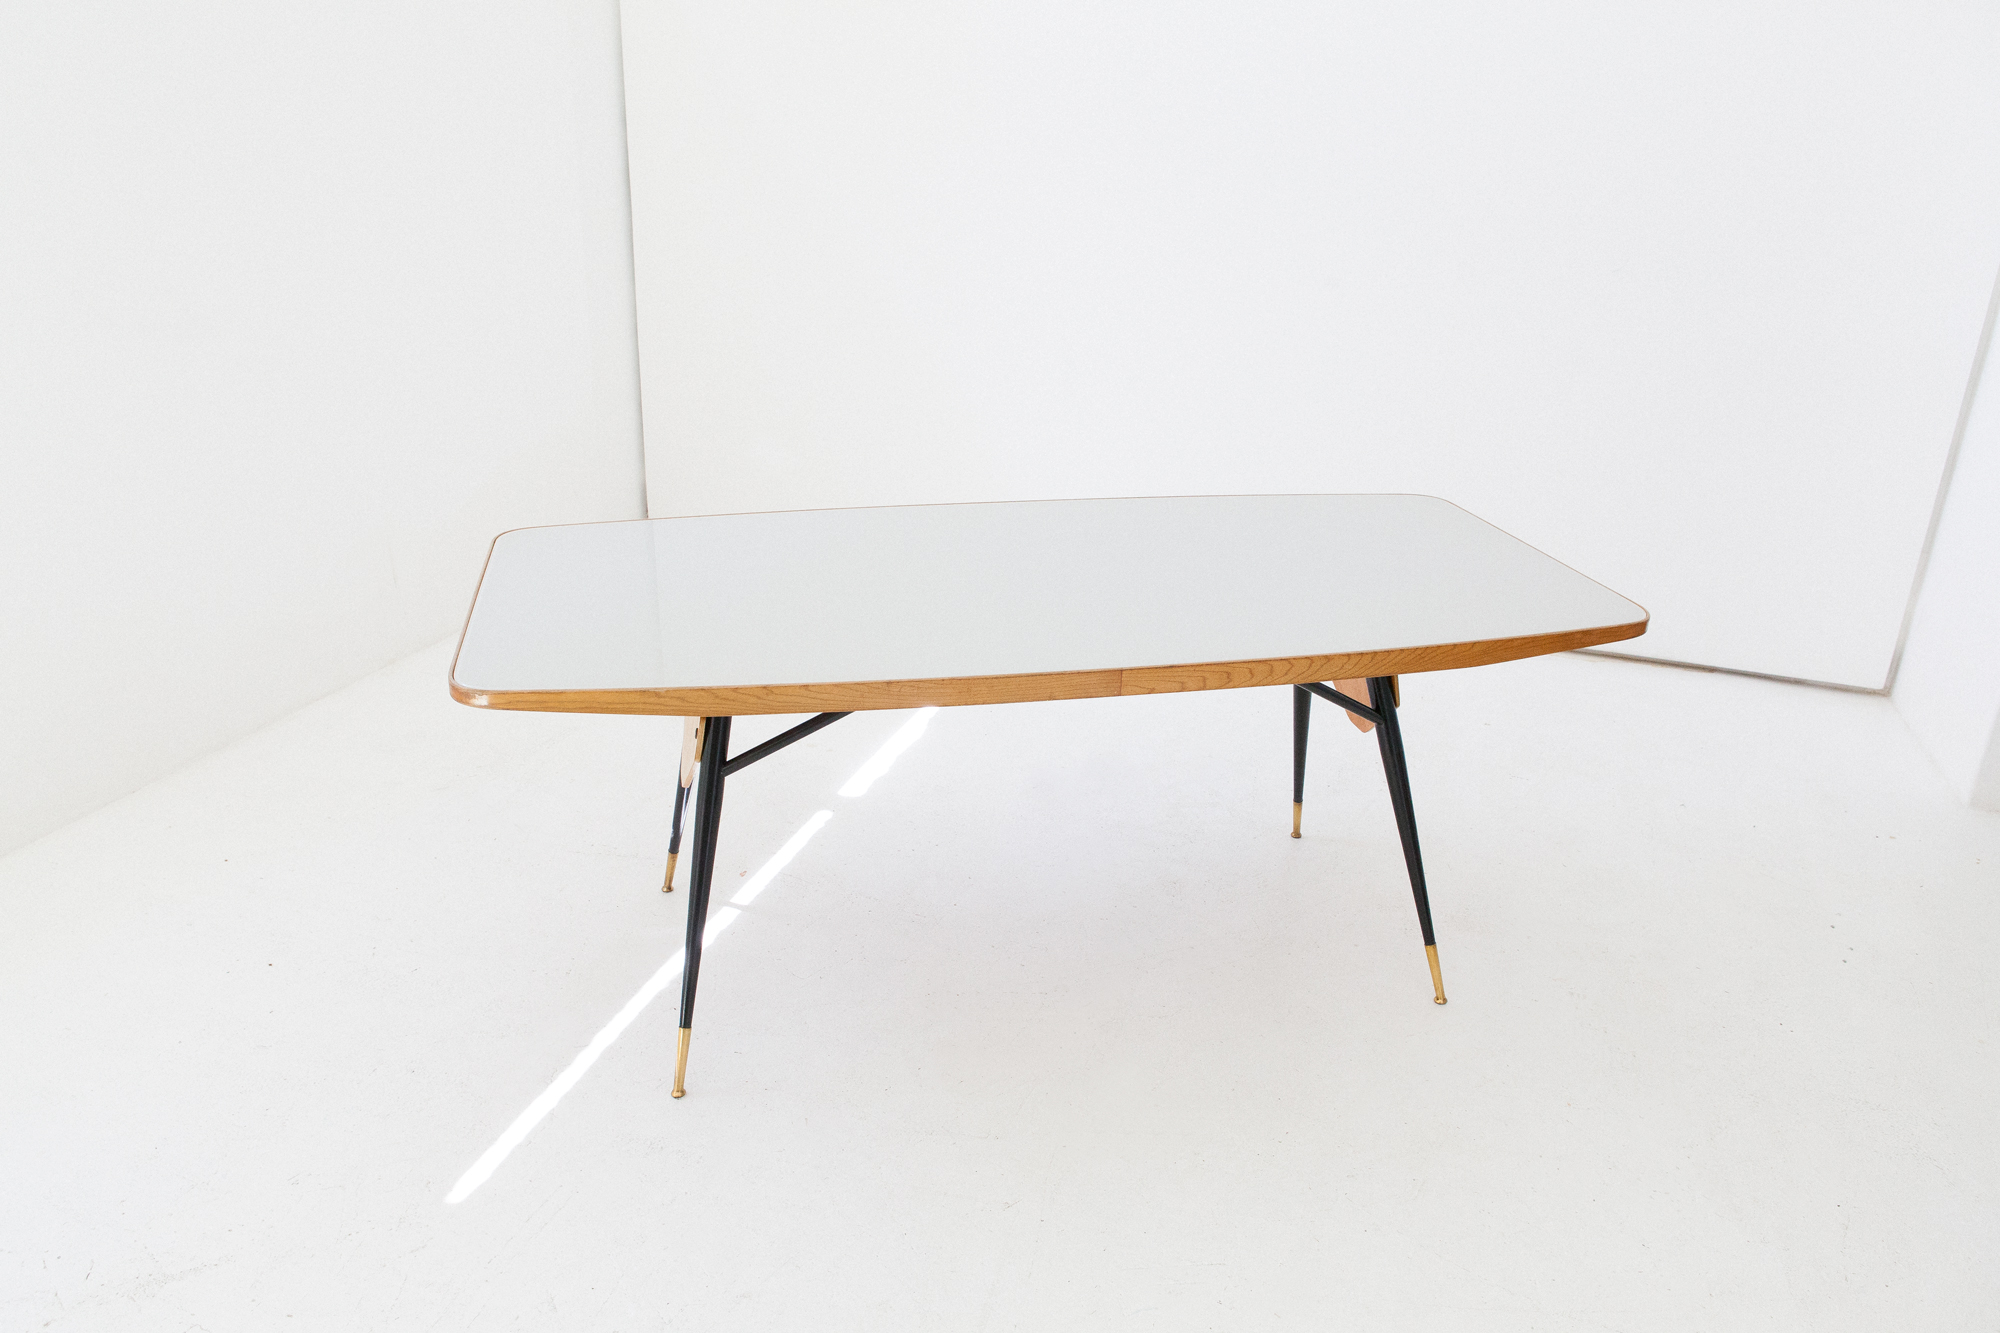 table-68.8